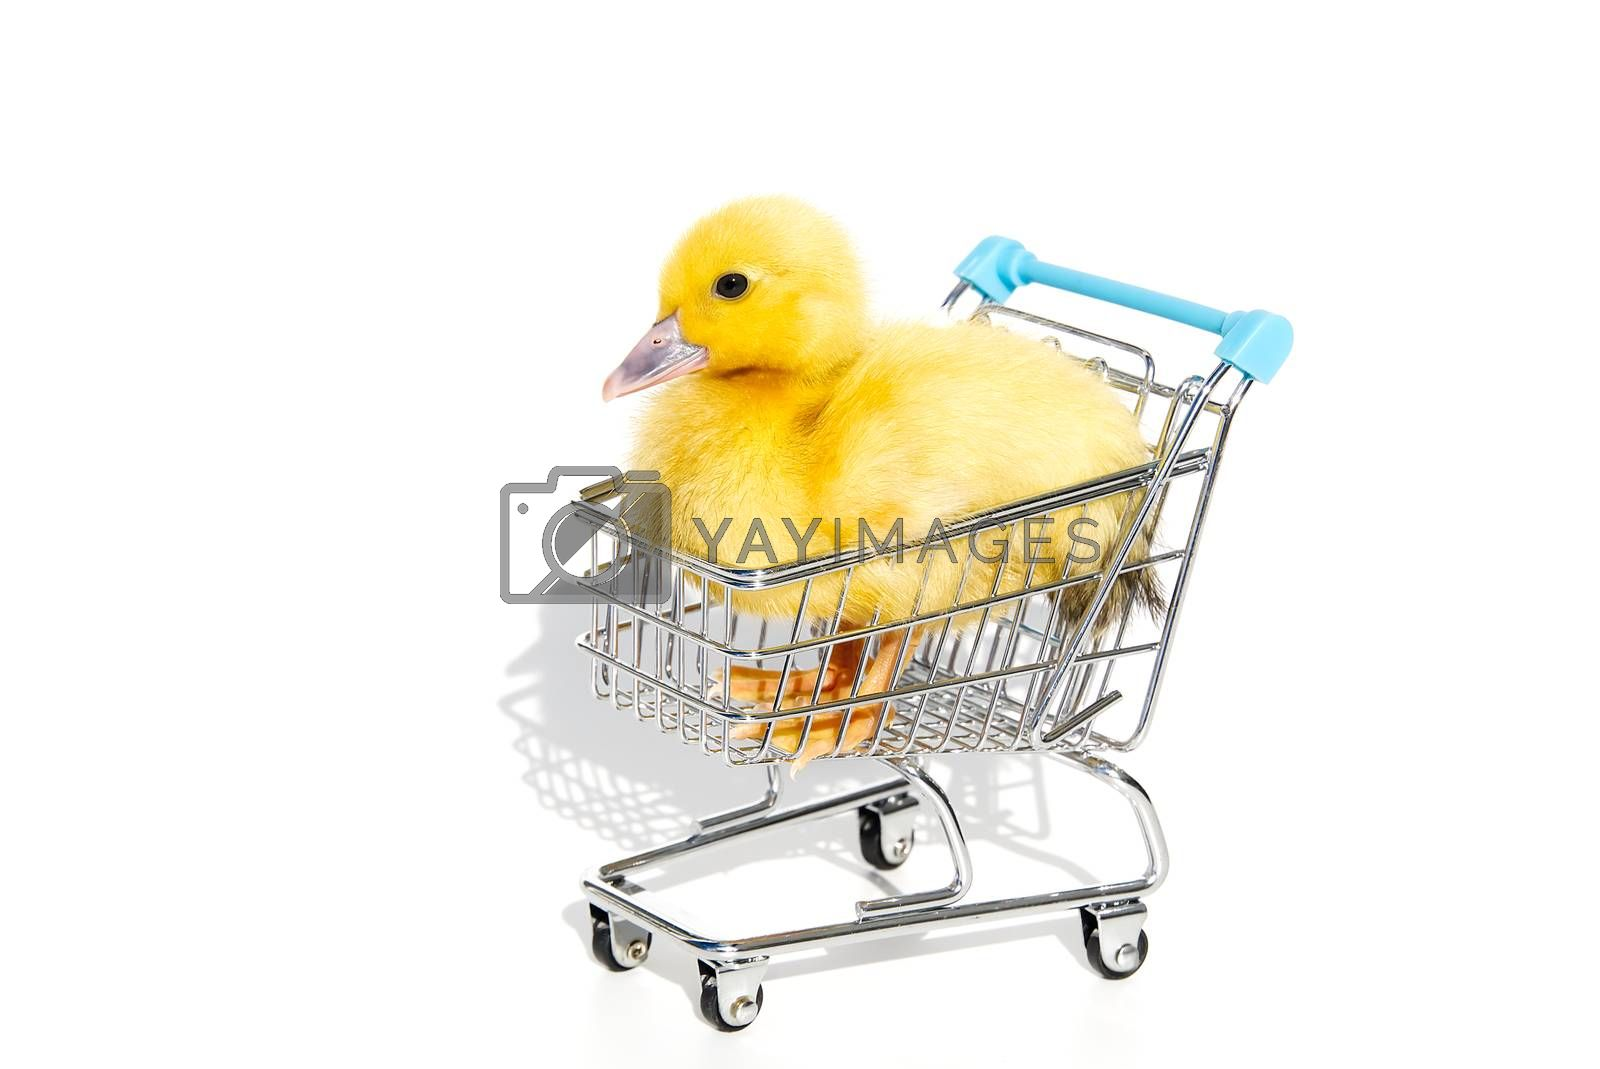 Little yellow ducklings in shopping carts on white background